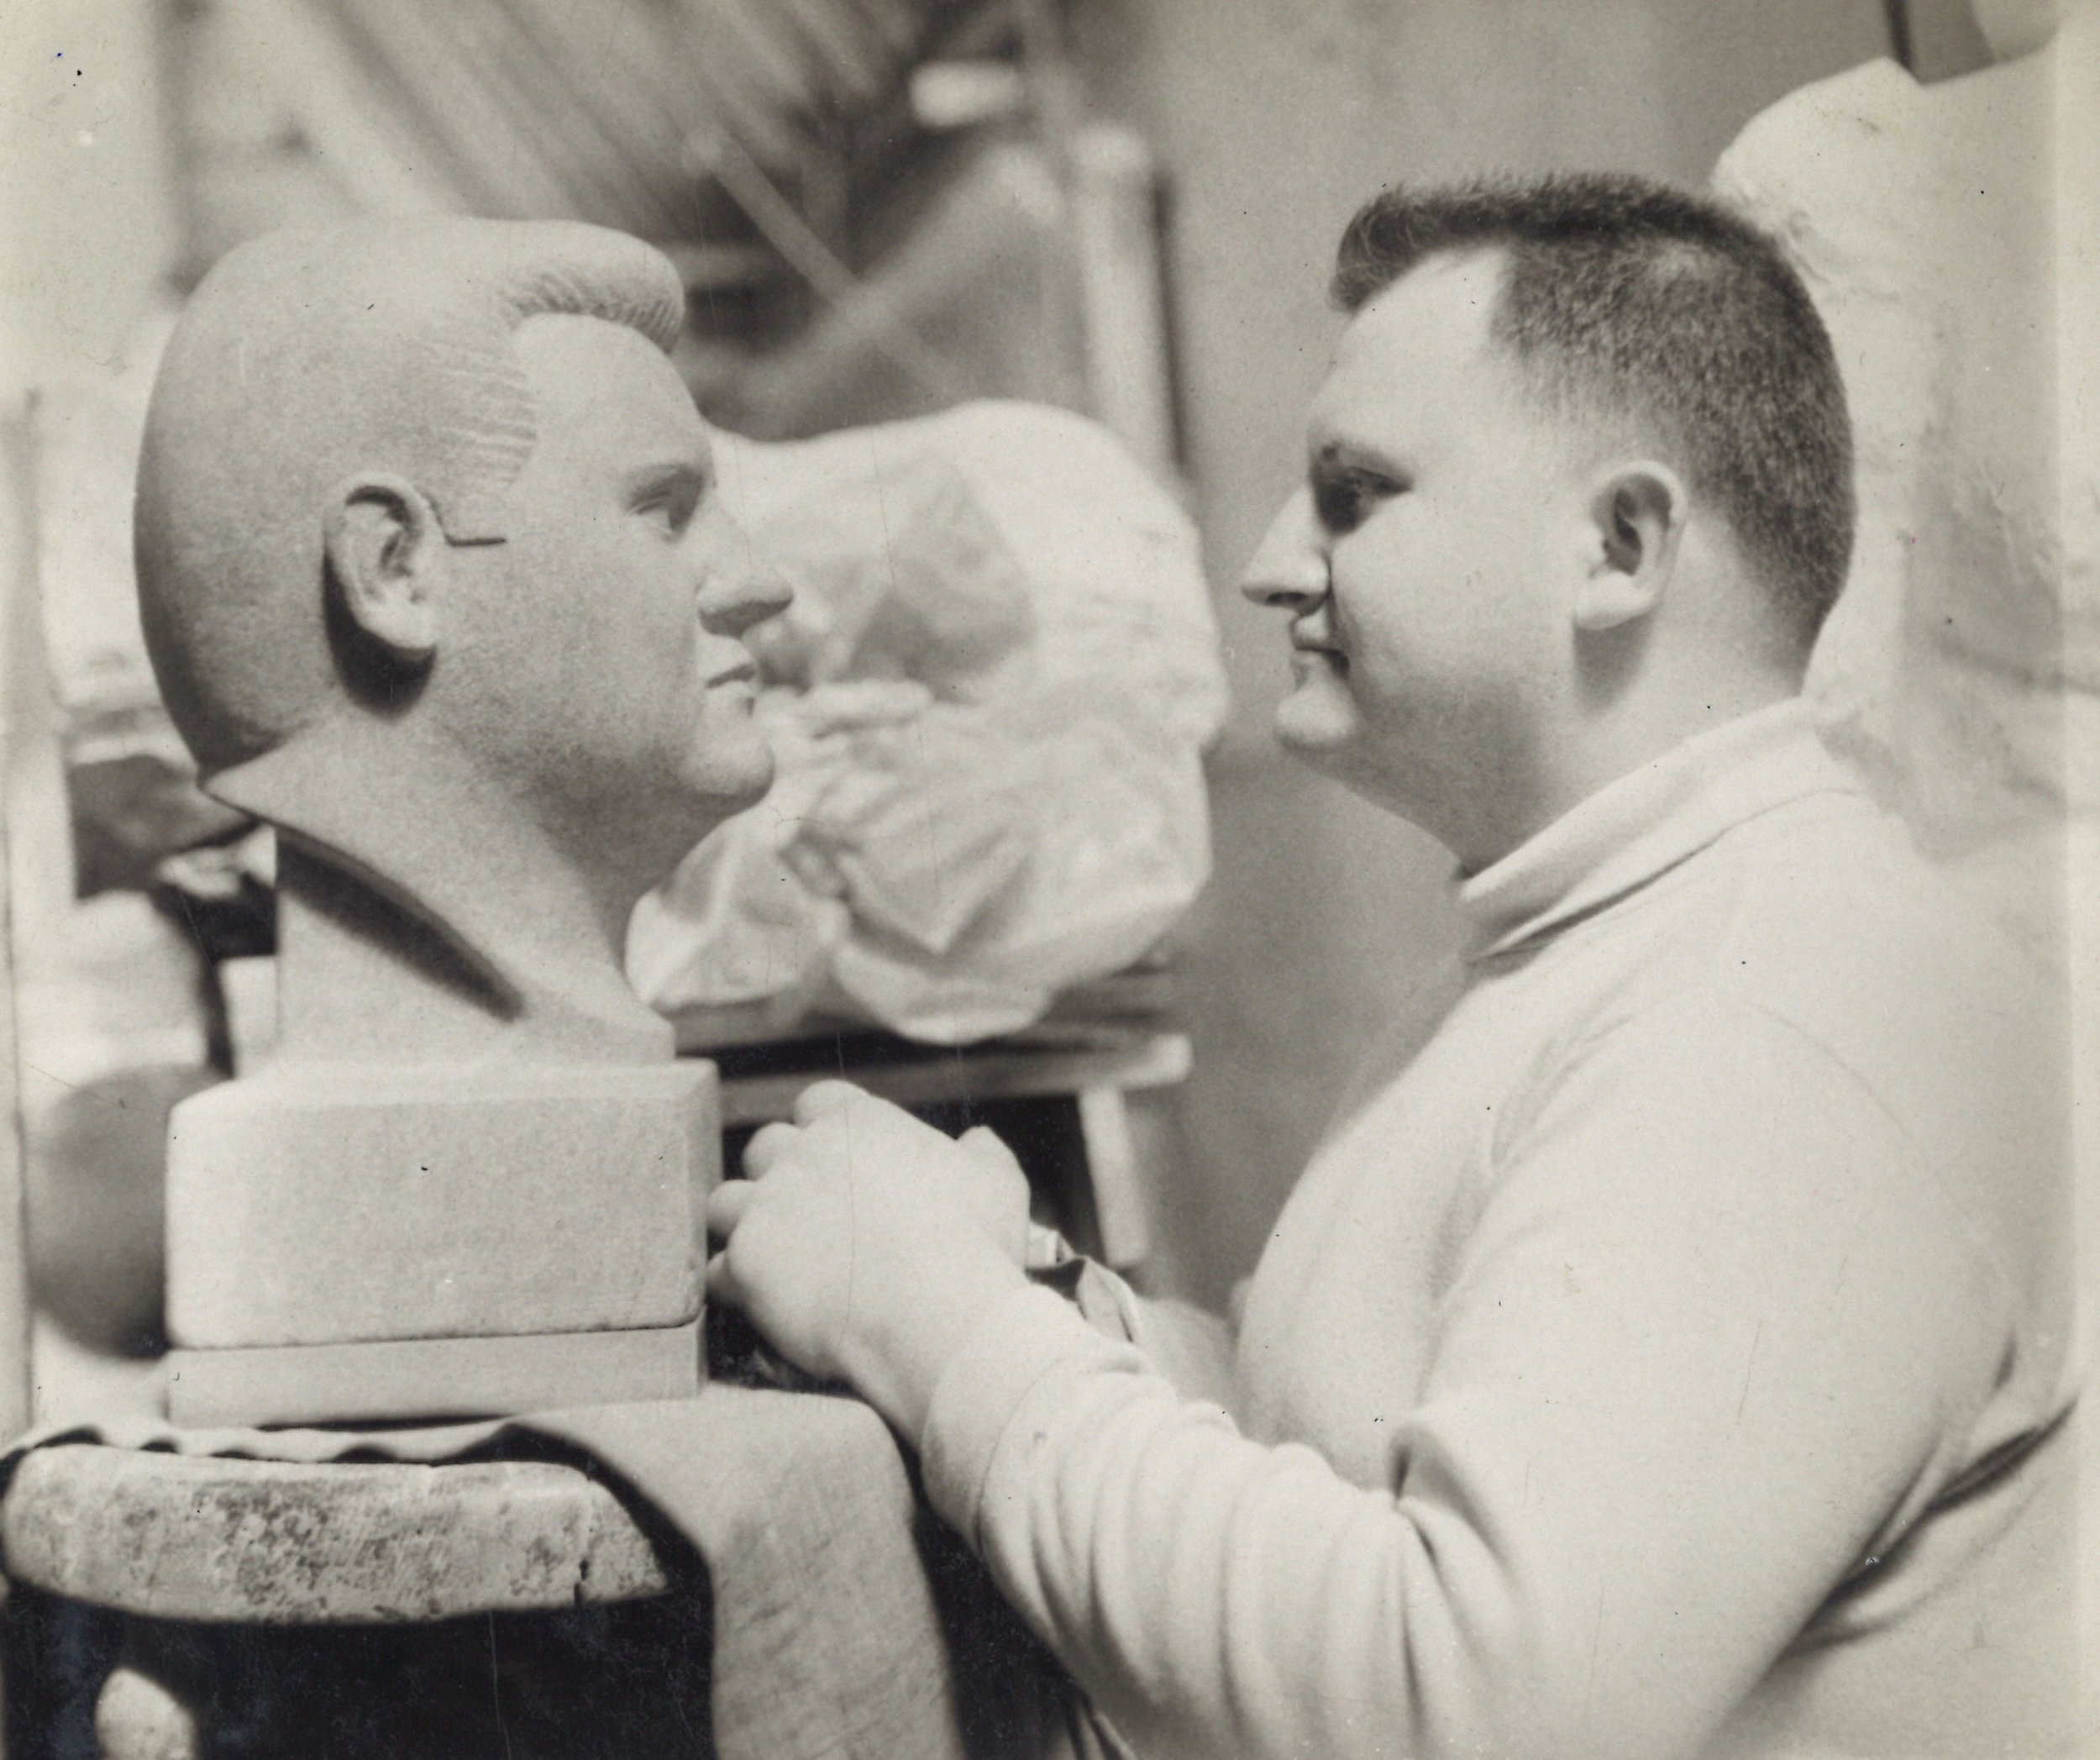 Emil confronts his image in stone carved by fellow ASL student Atillio Fierro (Photo by Atillio Fierro).